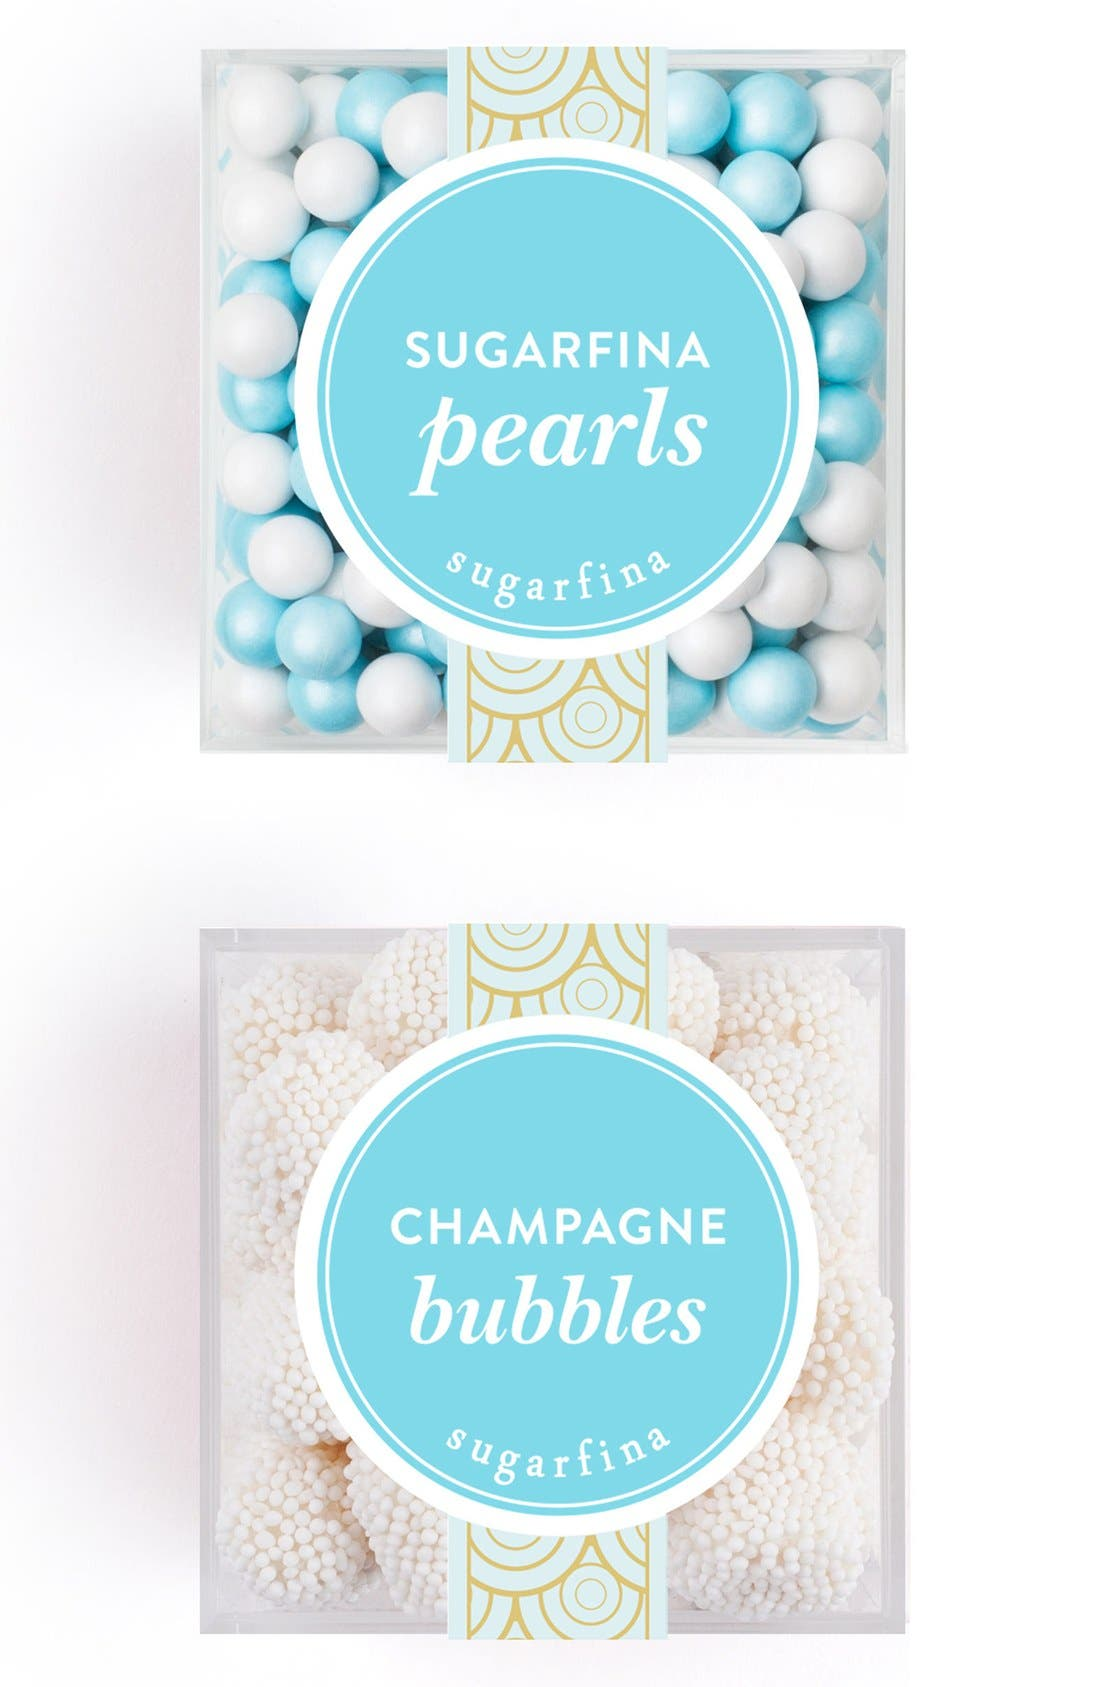 Pearls & Champagne Bubbles Gift Box Set,                             Main thumbnail 1, color,                             BLUE